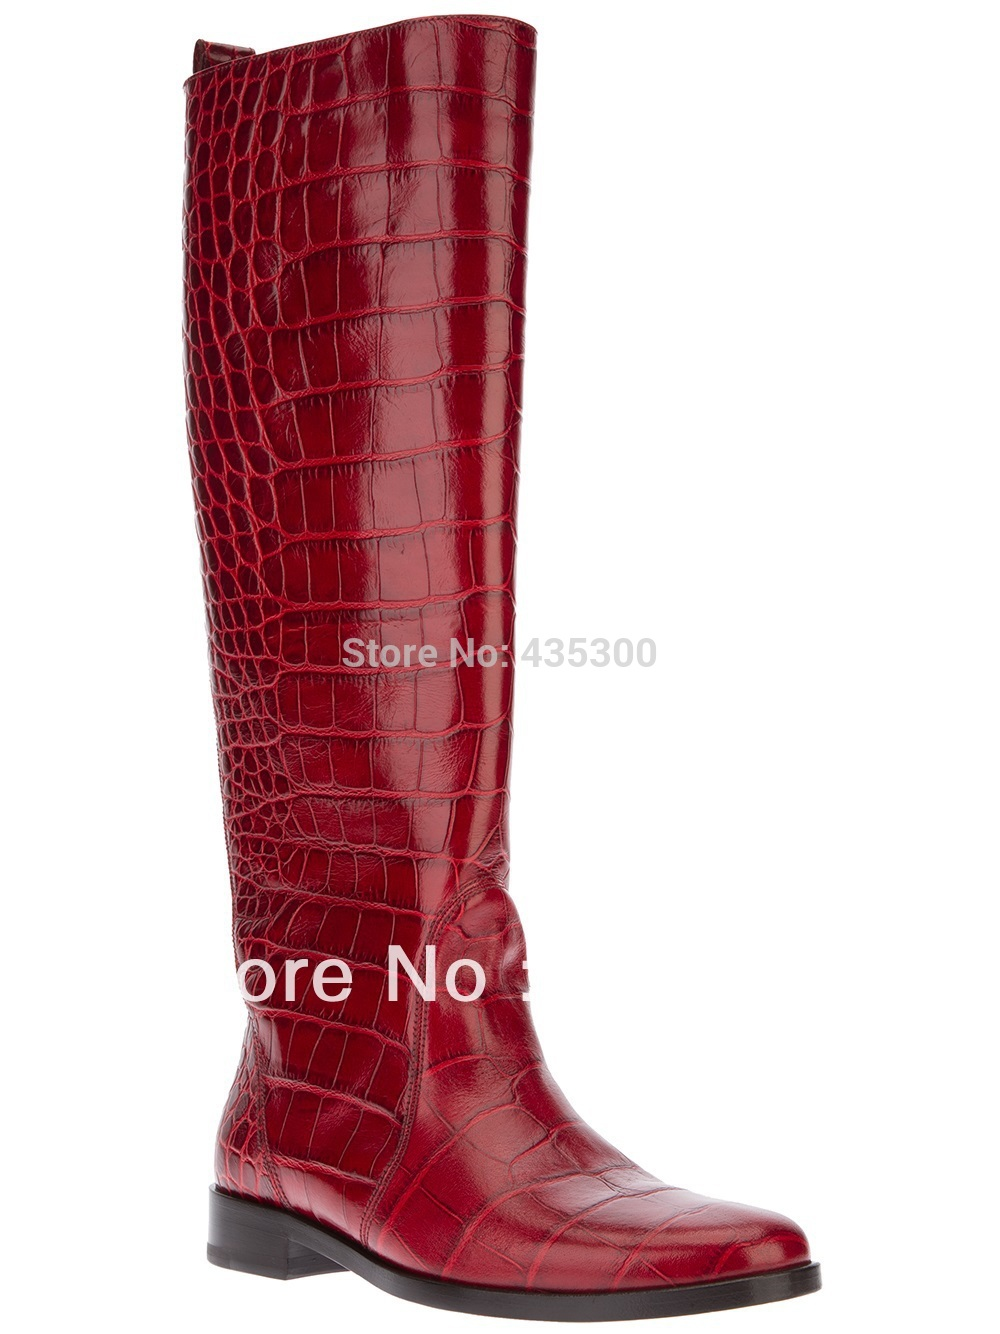 Red Boots Women mXPElFWc